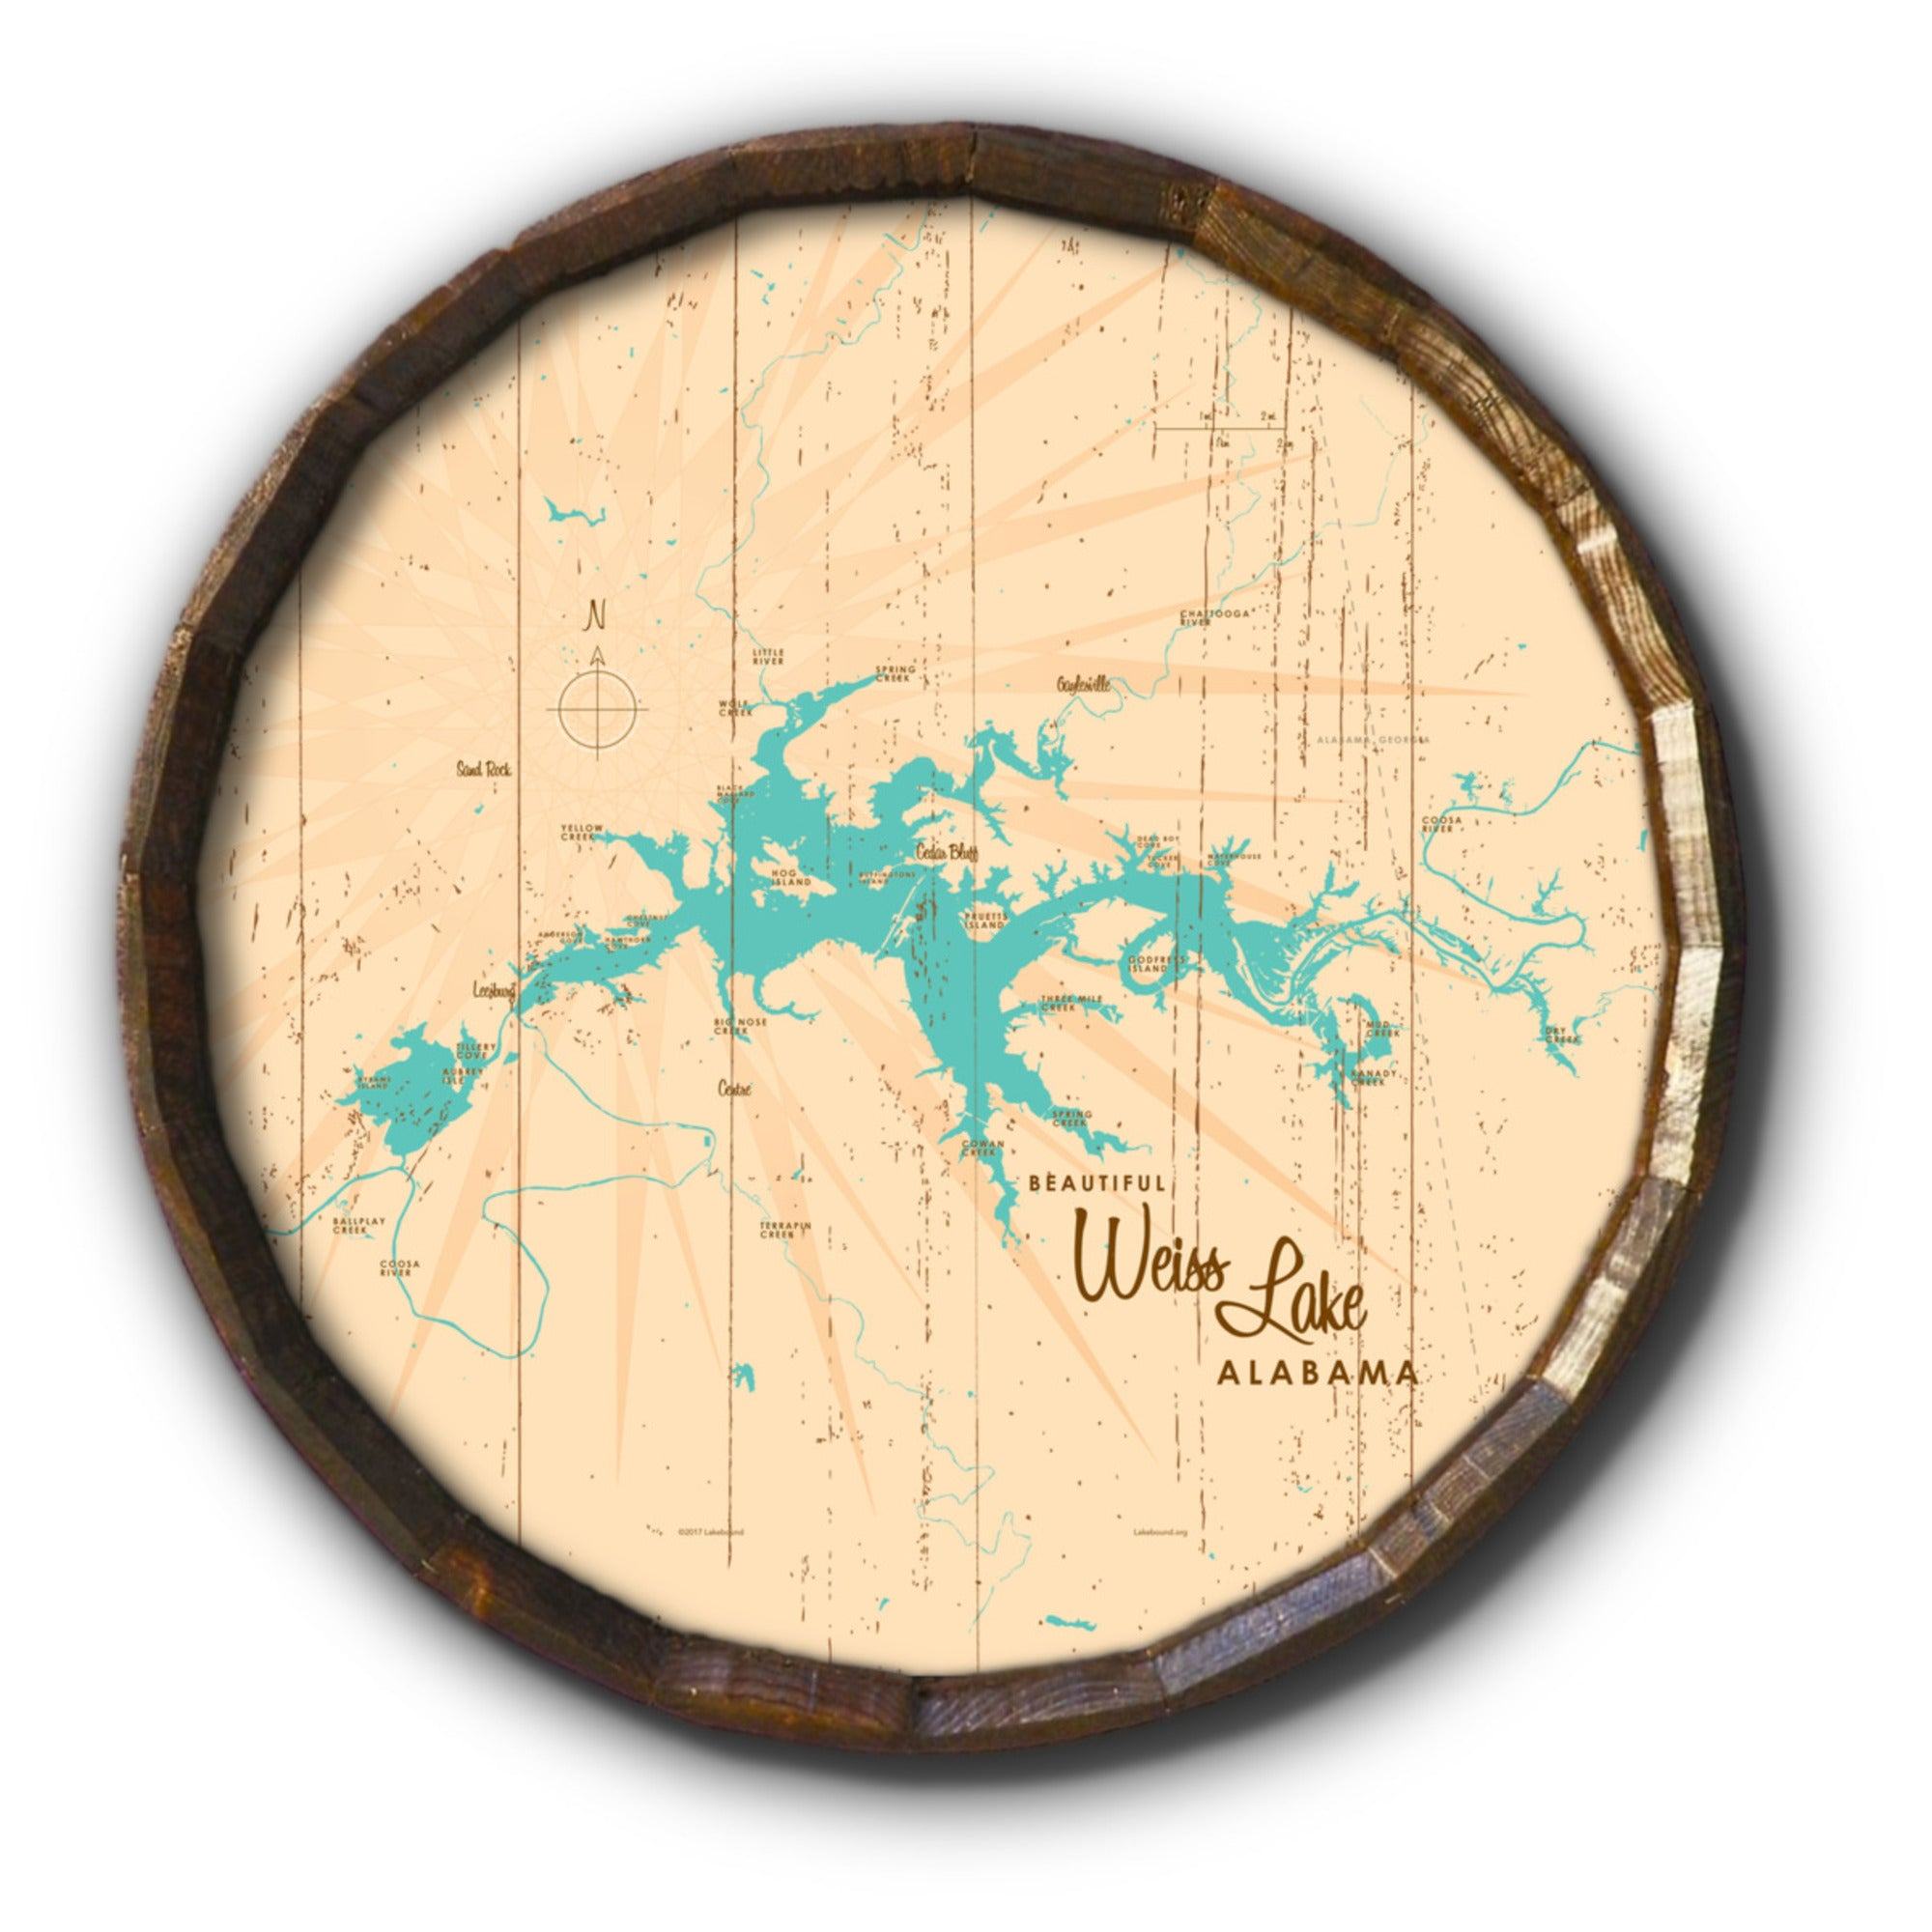 Weiss Lake Alabama, Rustic Barrel End Map Art